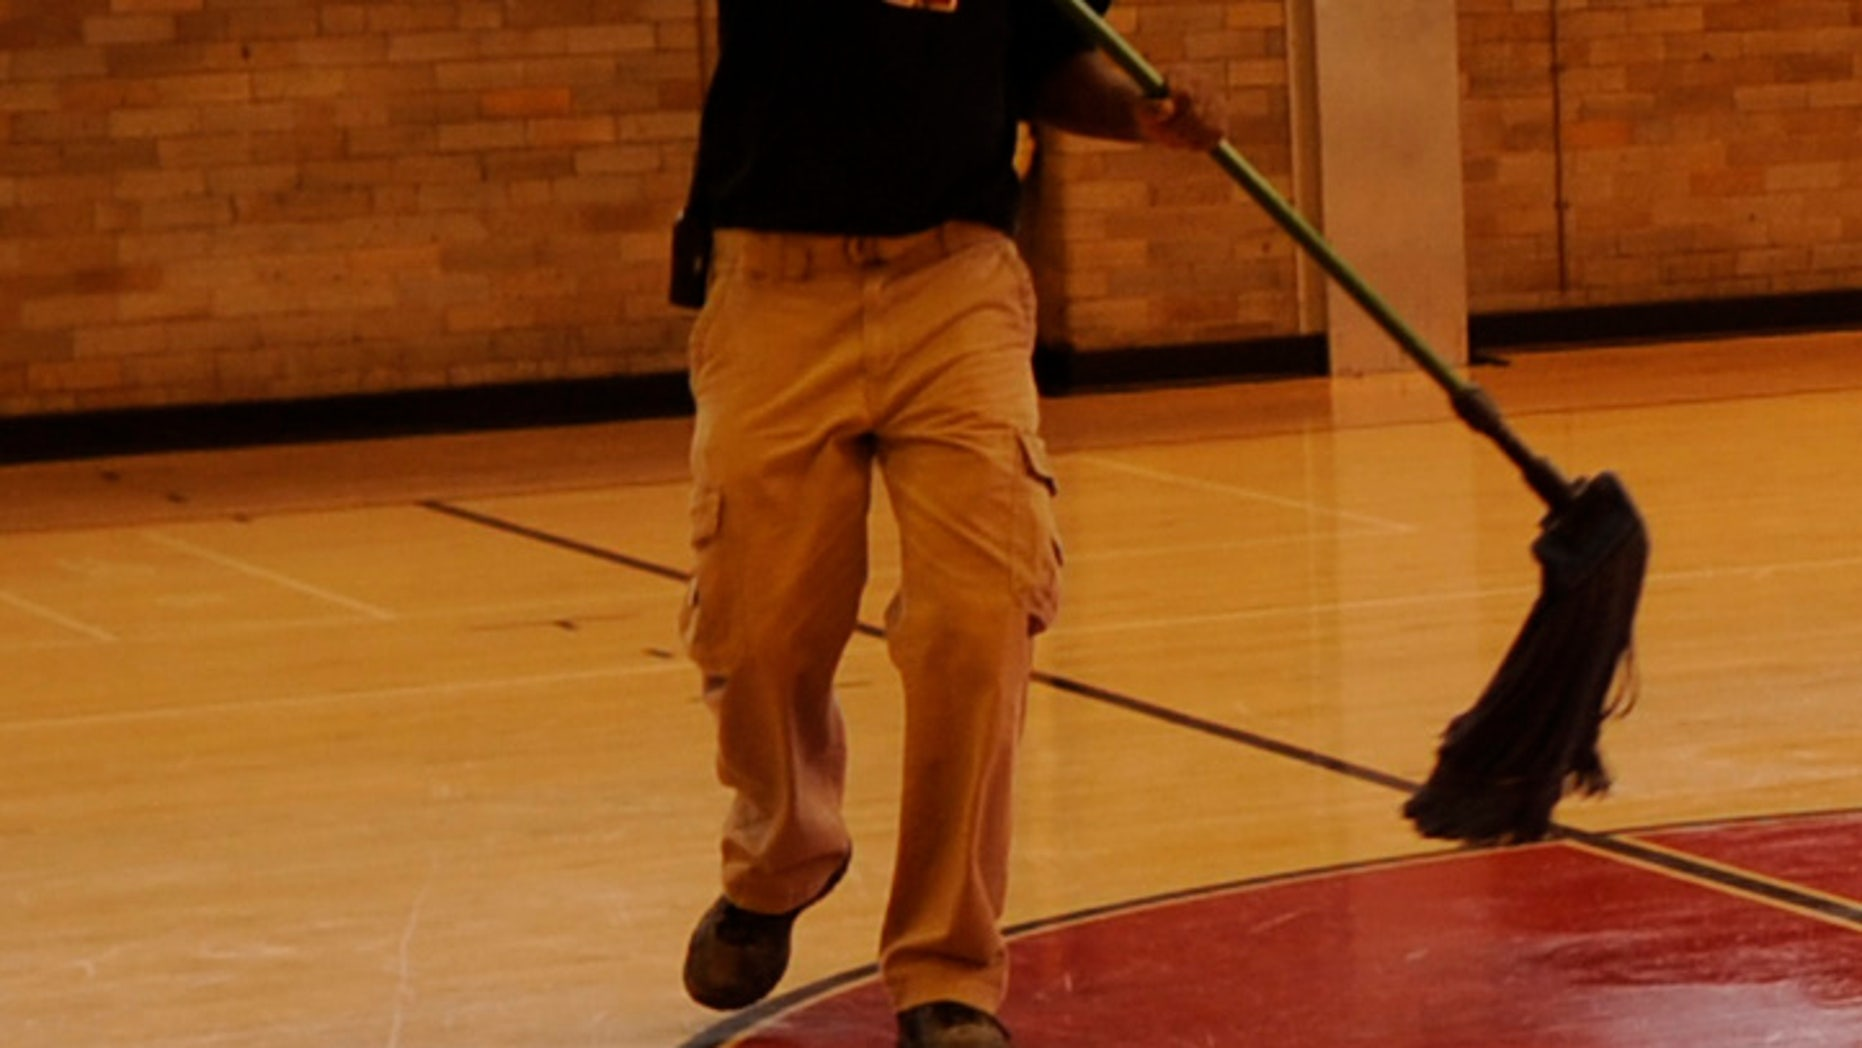 Lafayette Rockette, facility manager at East High School, cleans the floor, Monday, November 06, 2011, in the Calloway Gym at East High School that was built in 1924. RJ Sangosti, The Denver Post